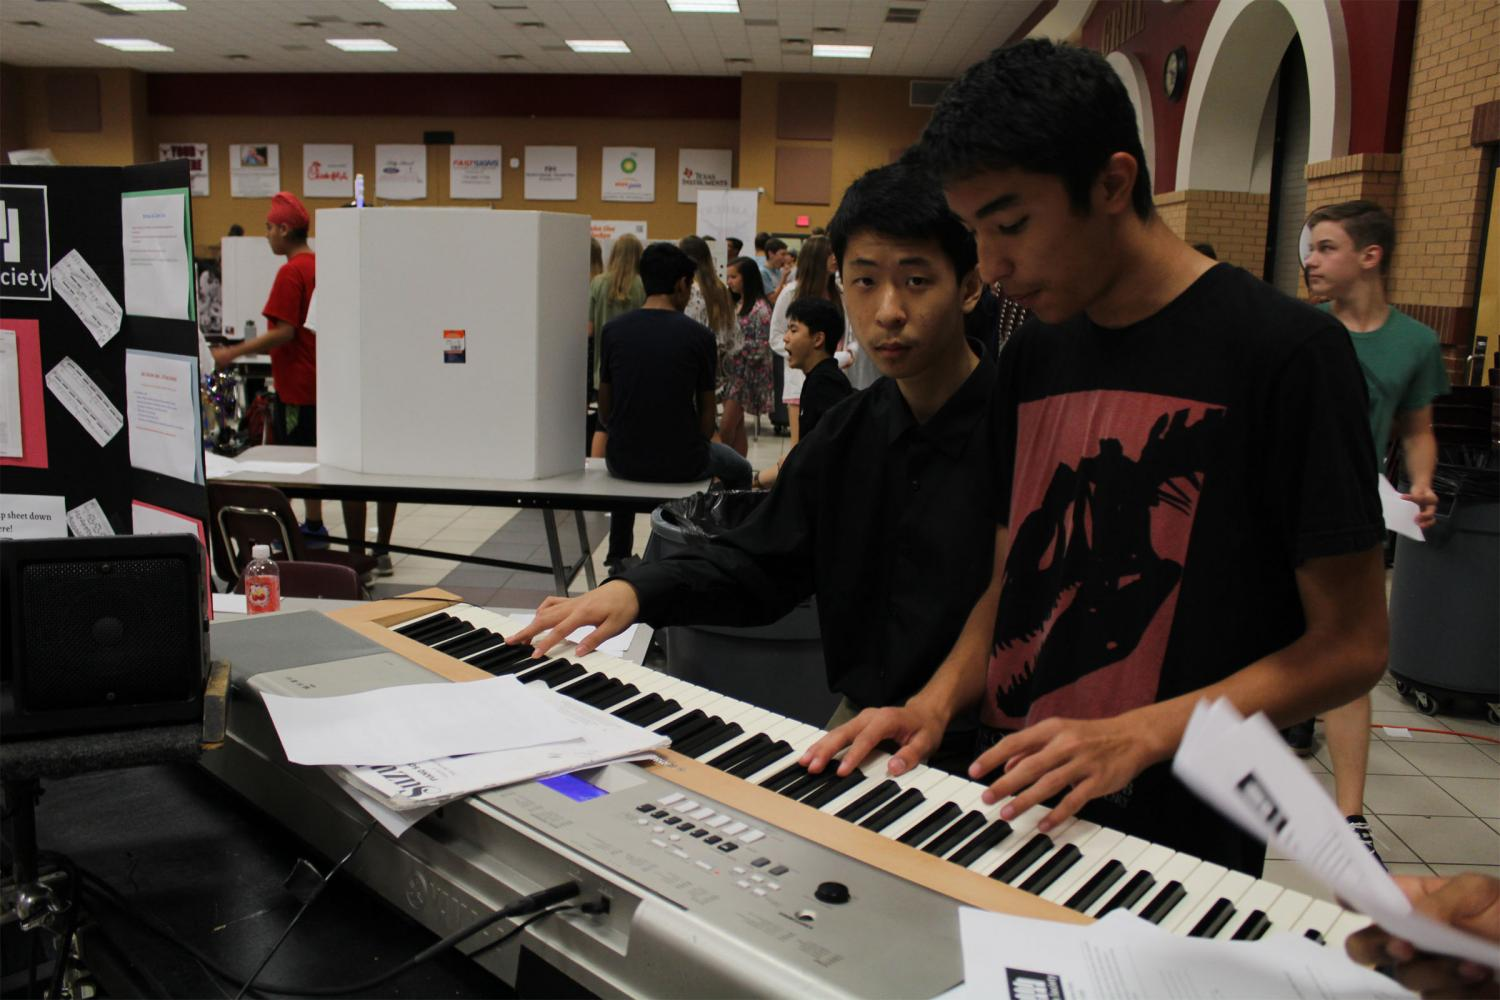 The Piano Club performs intricate pieces to attract new students.